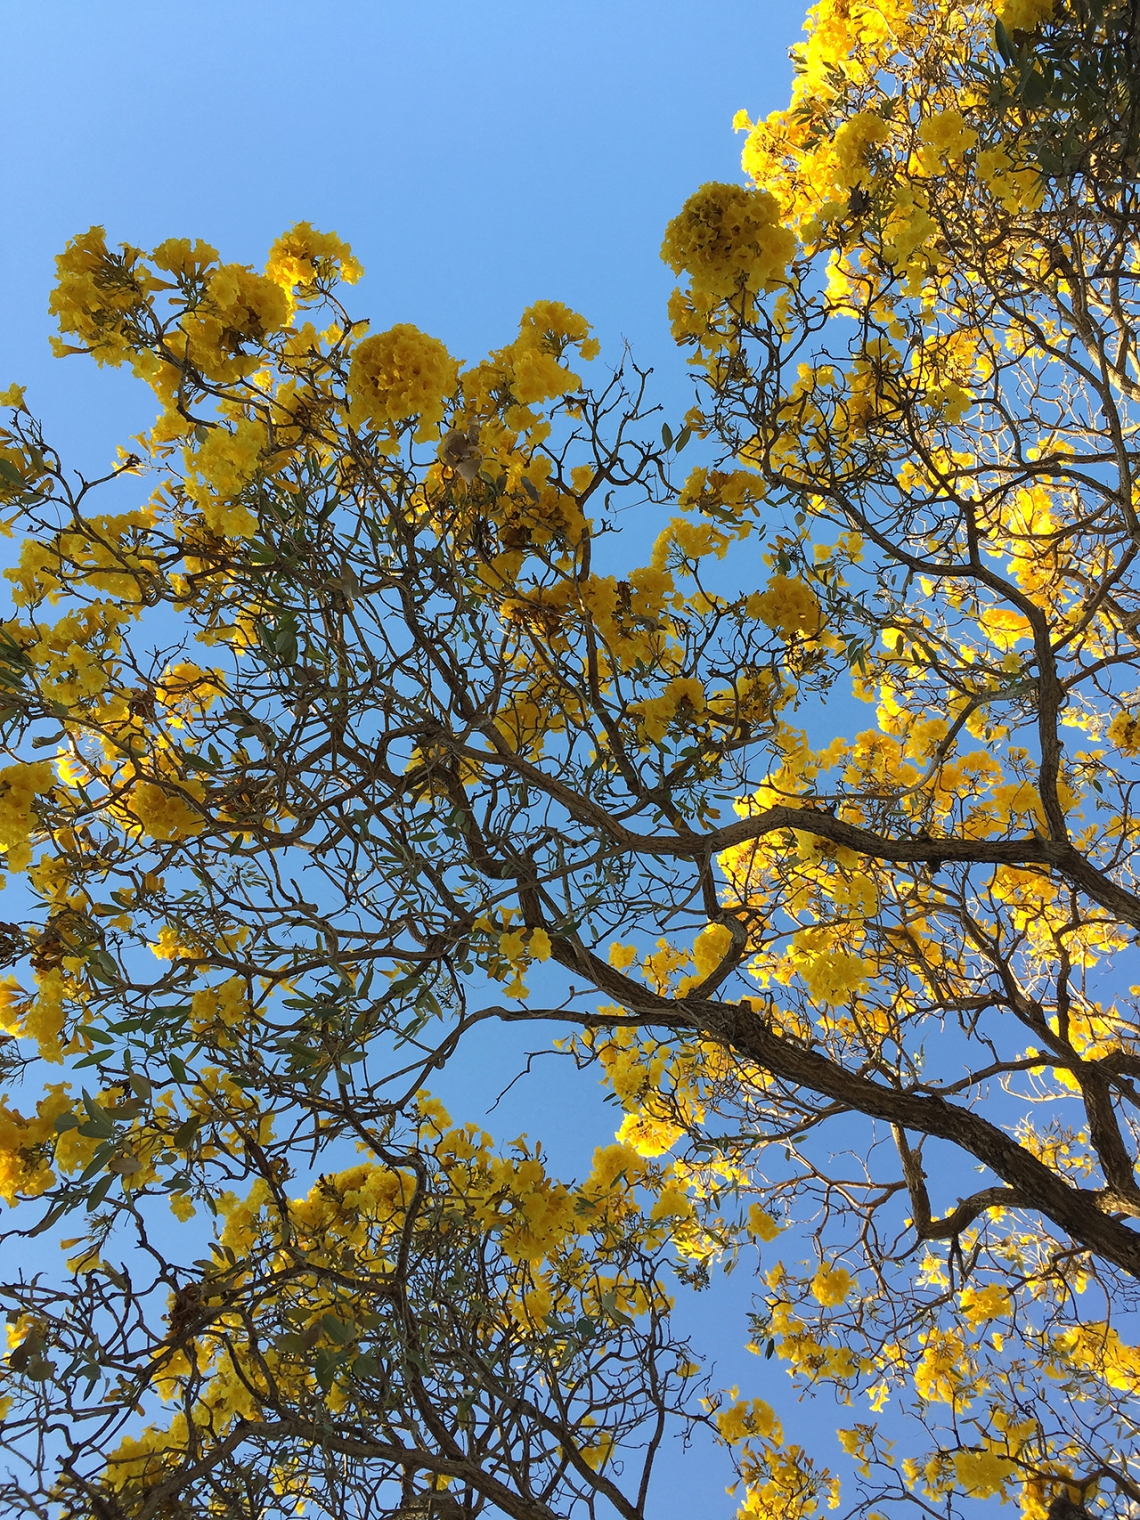 tabebuia tree flowers, yellow tabebuia flowers